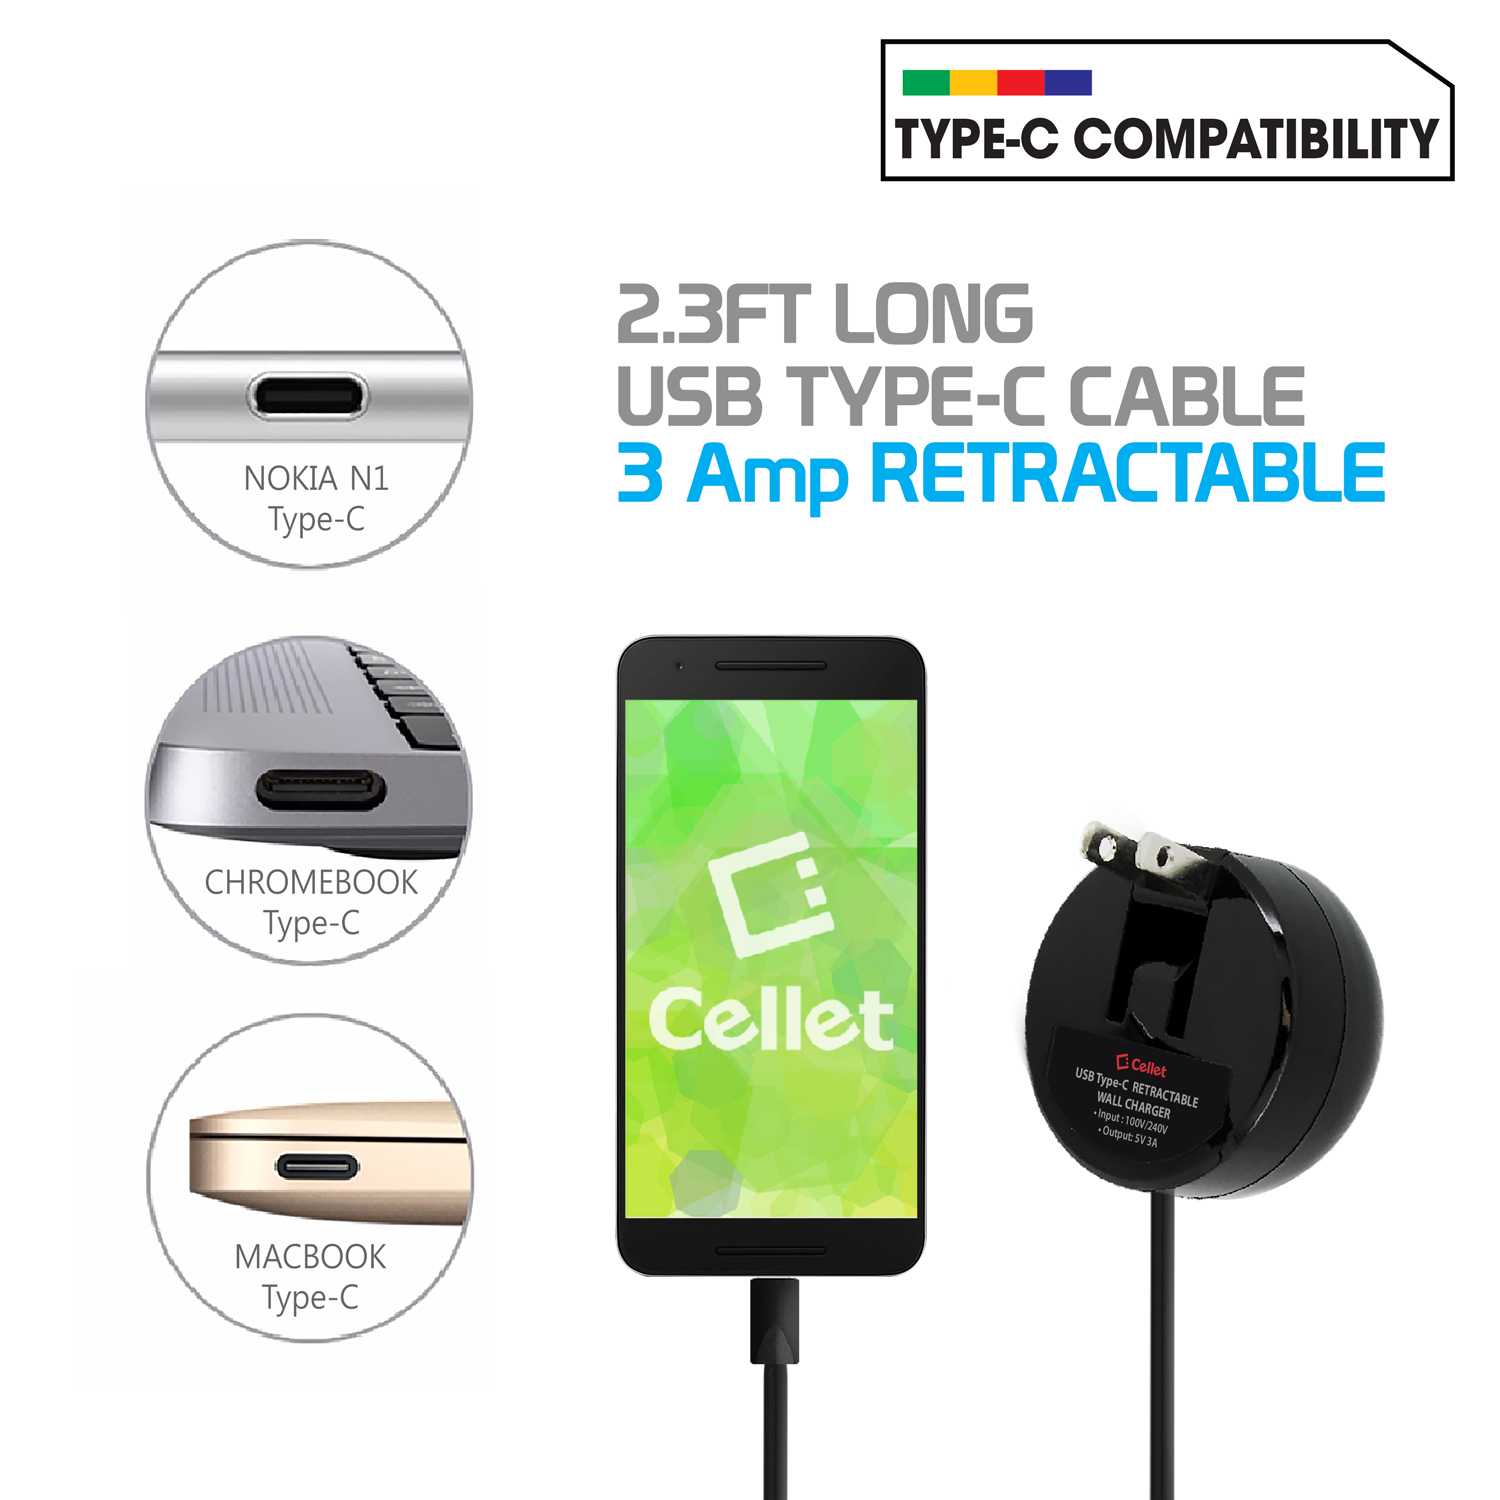 Motorola Edge Plus USB Type-C Retractable Home AC Charger Black